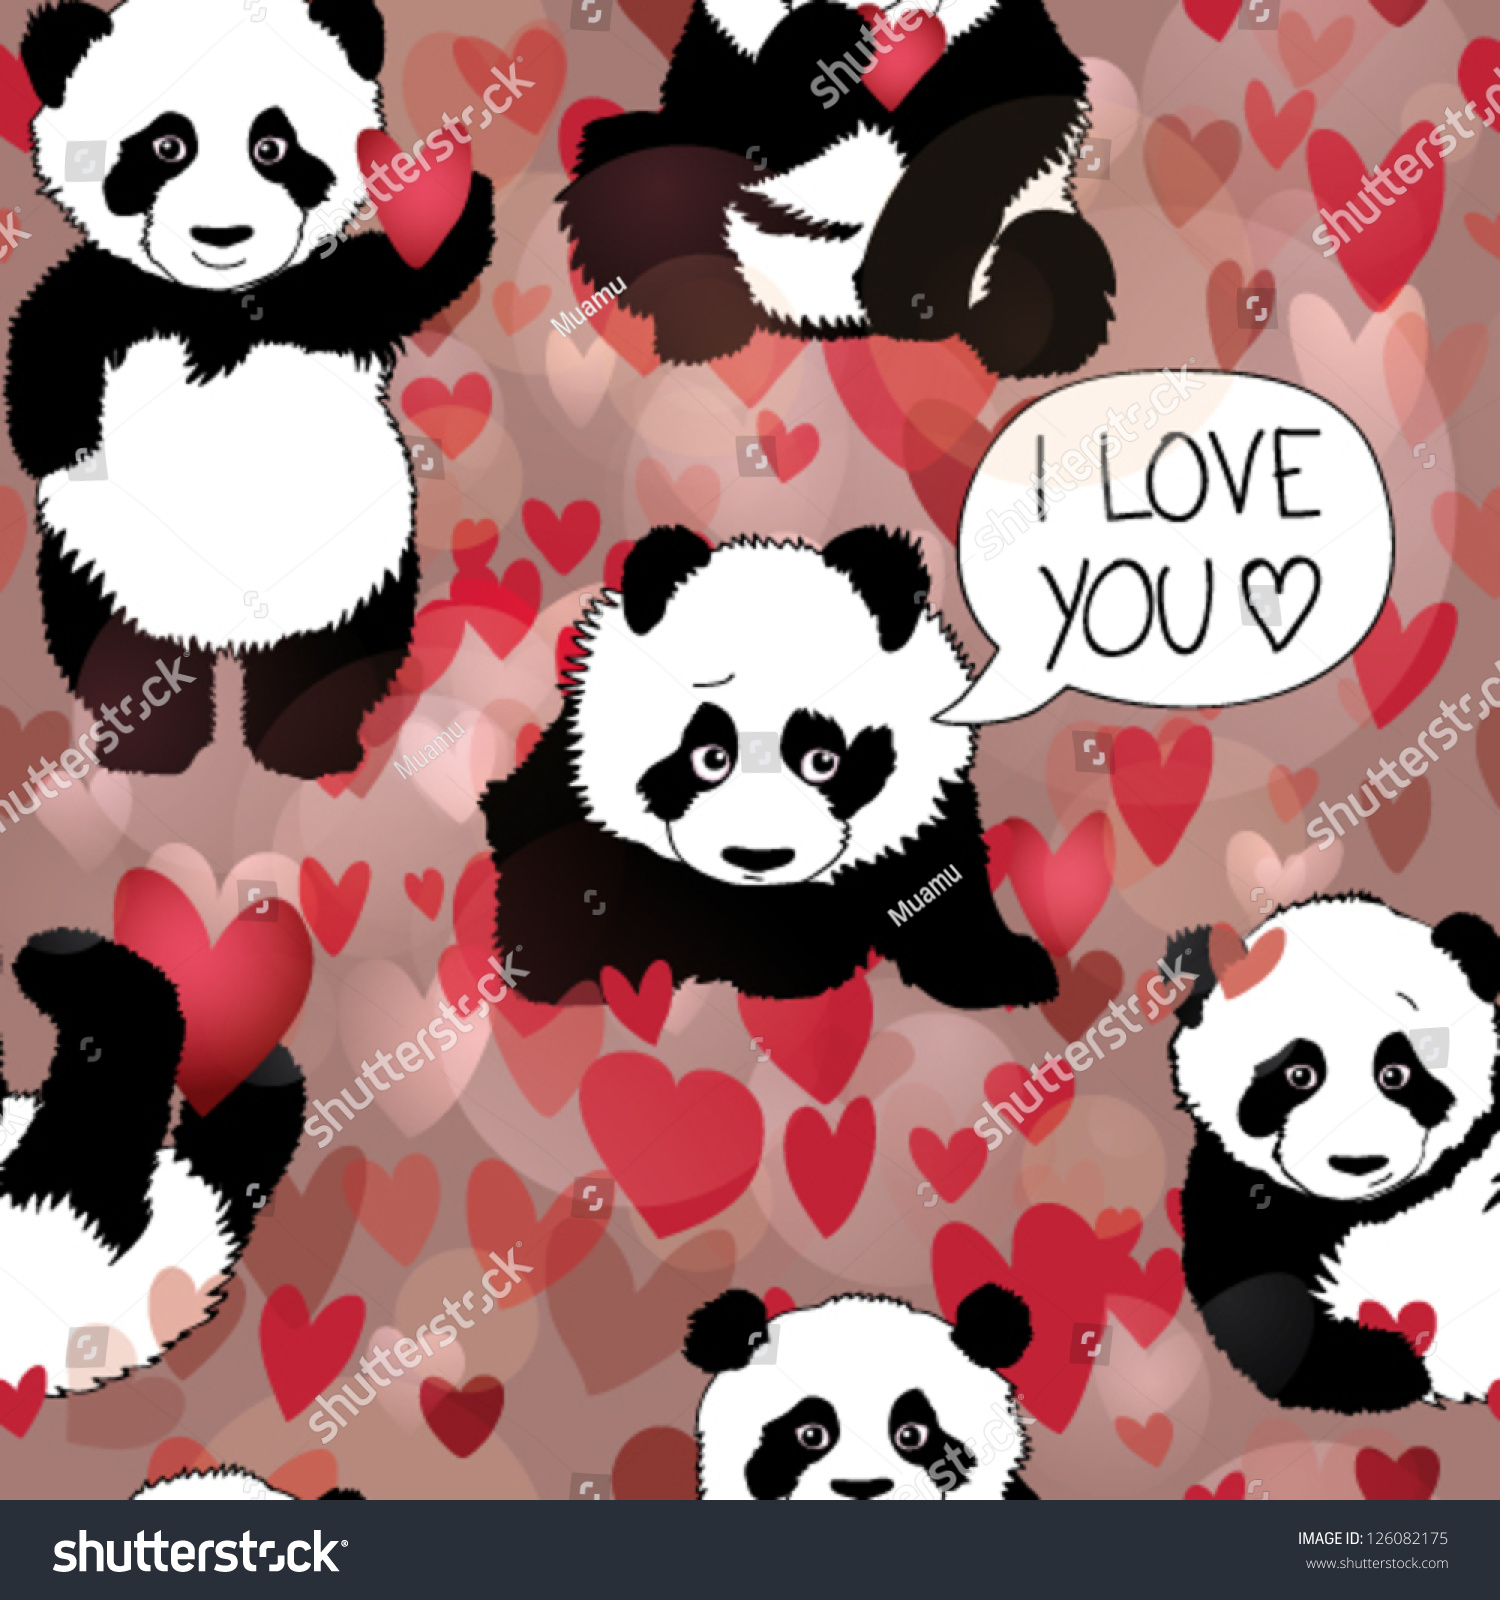 Seamless Vector Pattern With Panda In int ValentineS Day